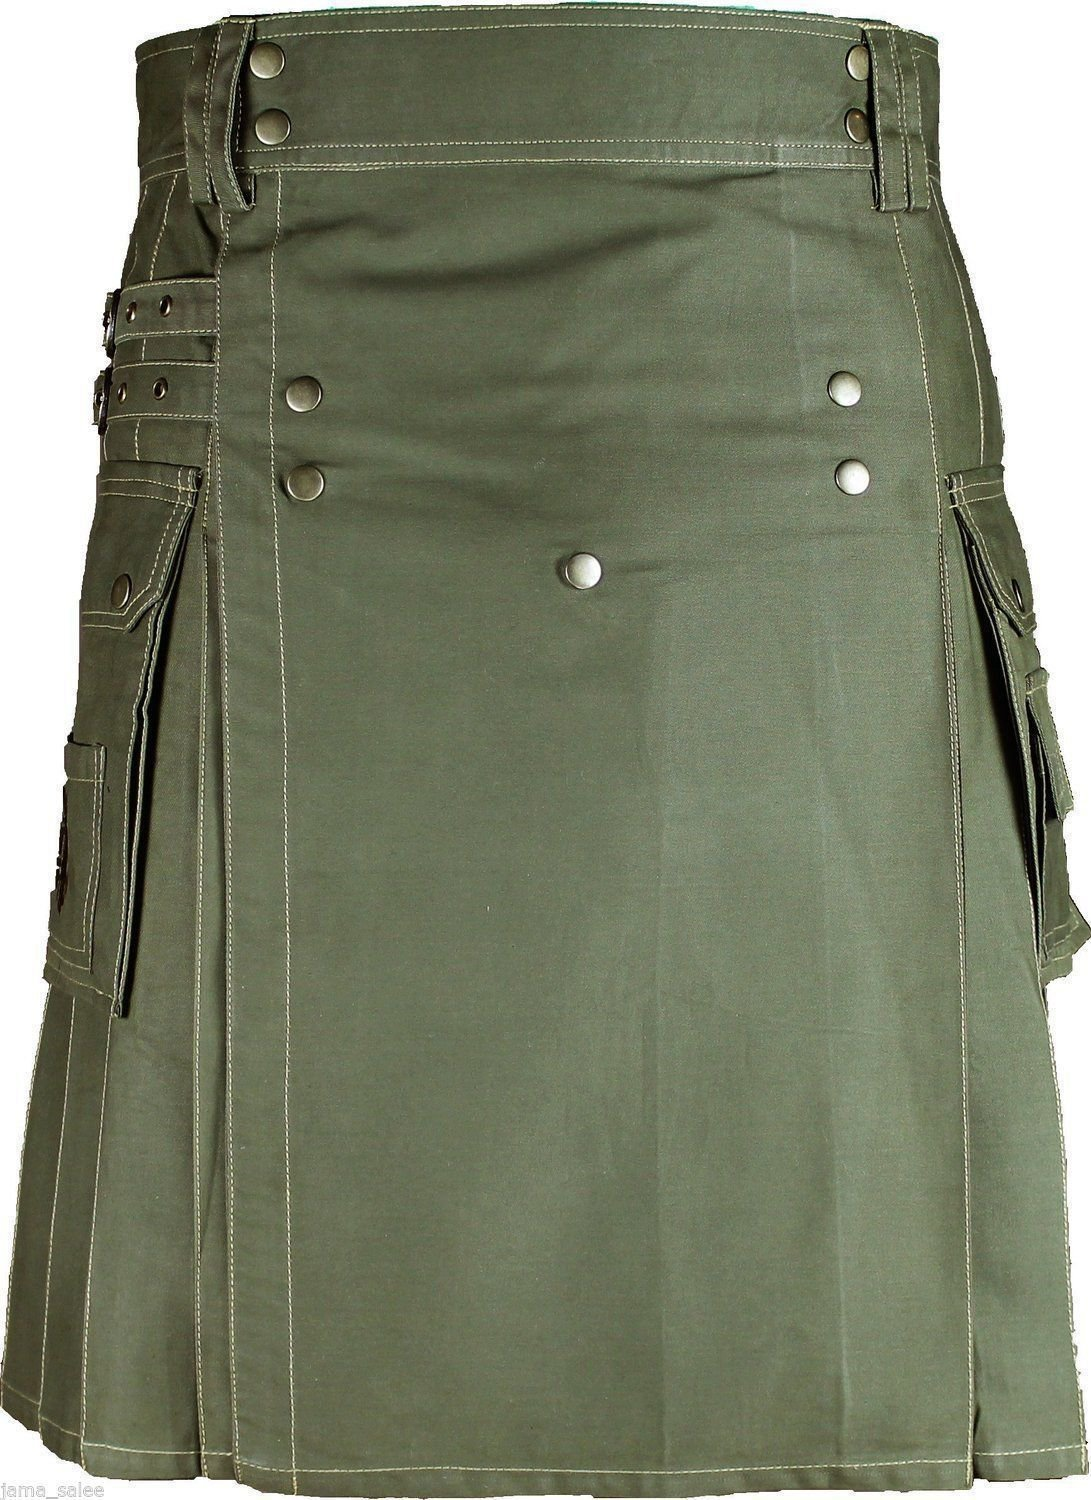 Unisex Modern Utility Kilt Olive Green Cotton Kilt Brass Material Scottish Kilt Fit to 42 Waist